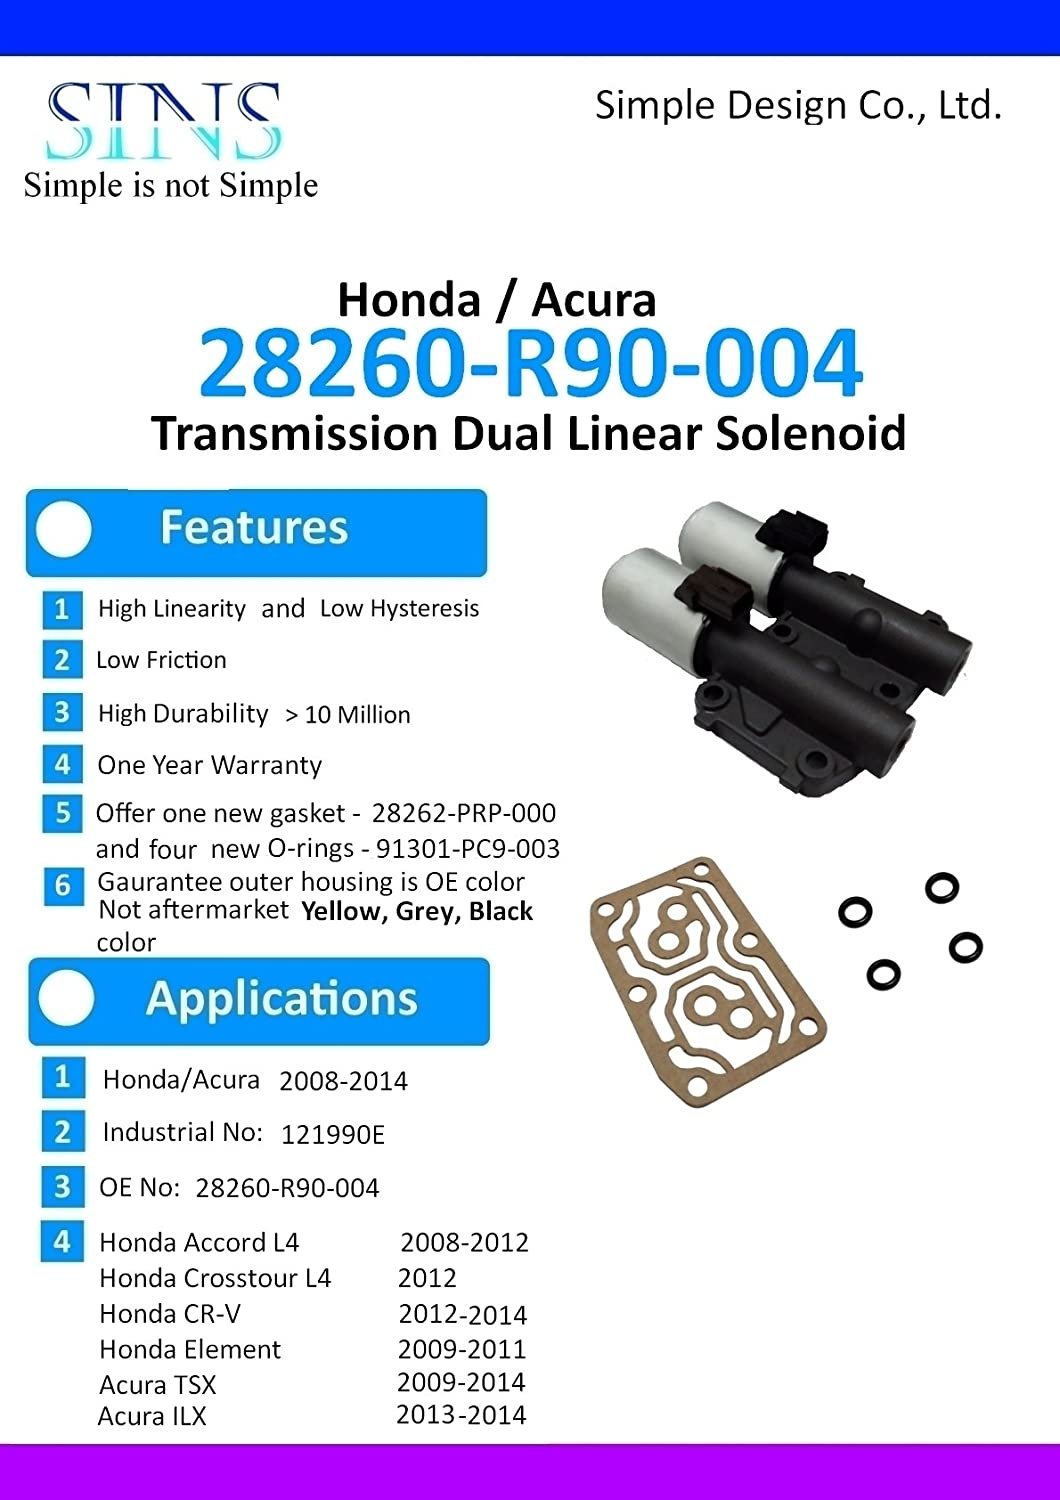 SINS Accord Crosstour CR-V Element TSX ILX Transmission AT Clutch Pressure Control Solenoid Valve B and C 28260-R90-004-Casting